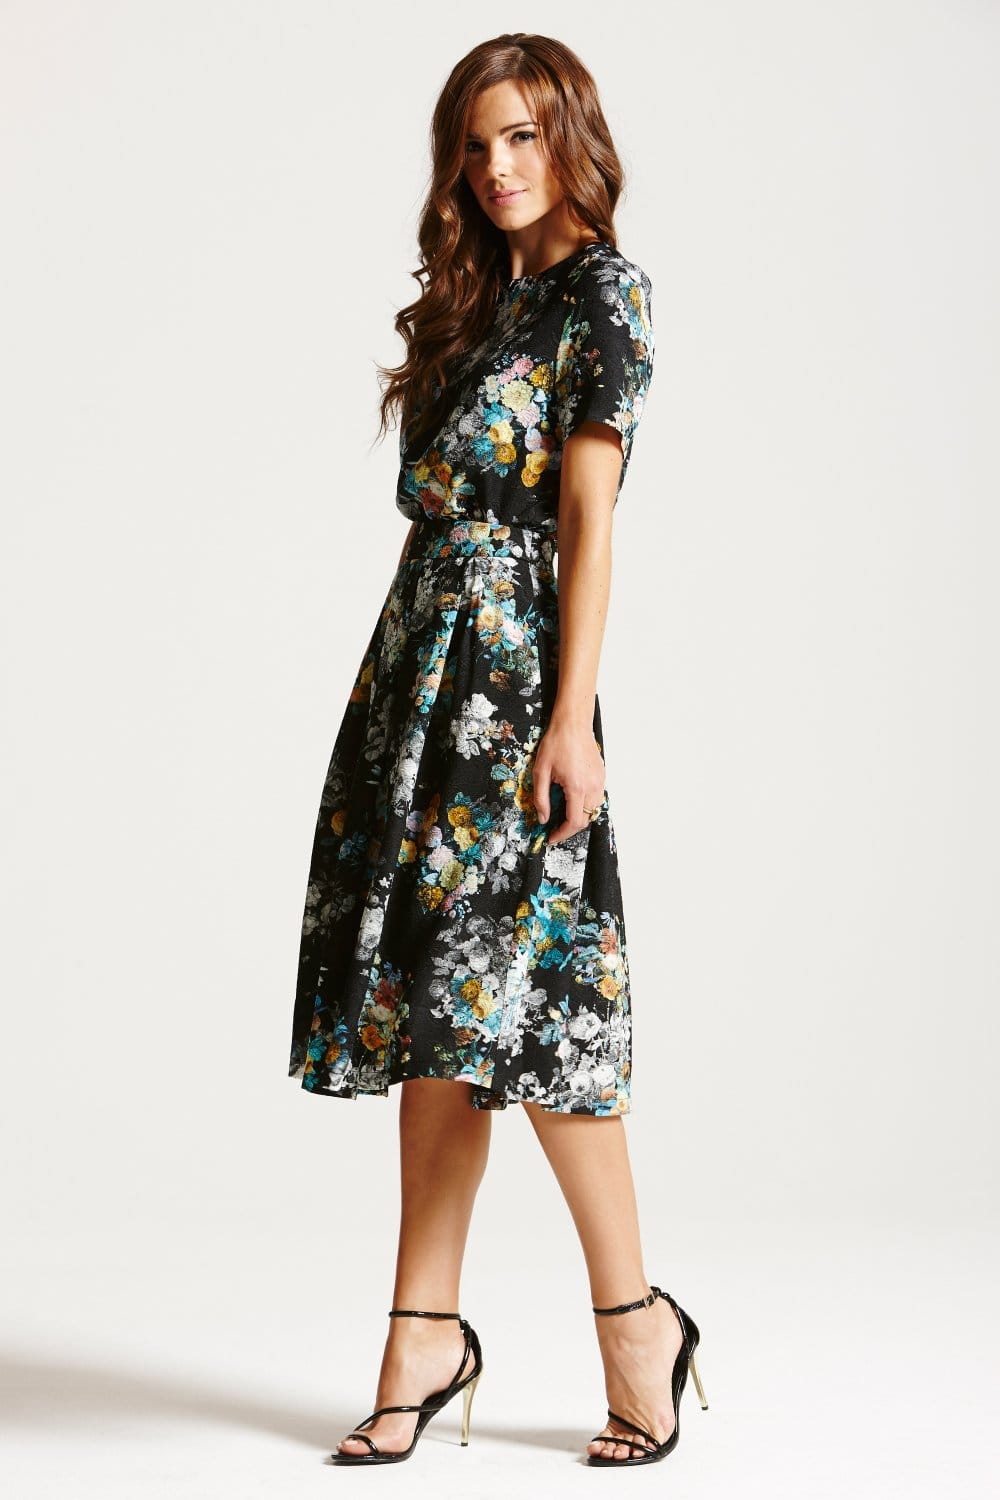 Pleated Floral Midi Skirt - Dress Ala